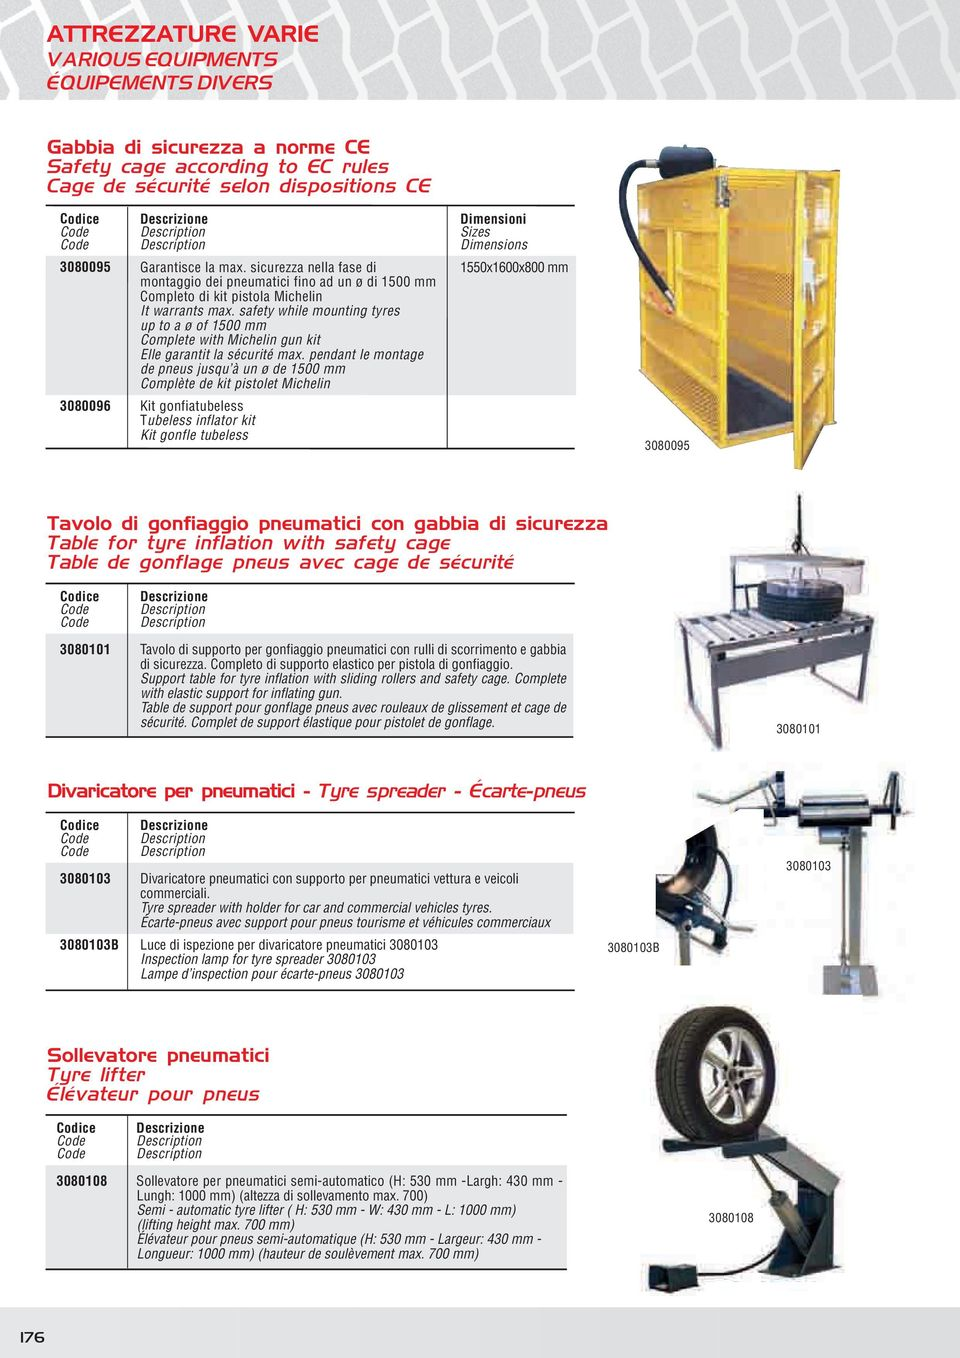 safety while mounting tyres up to a ø of 1500 mm Complete with Michelin gun kit Elle garantit la sécurité max.